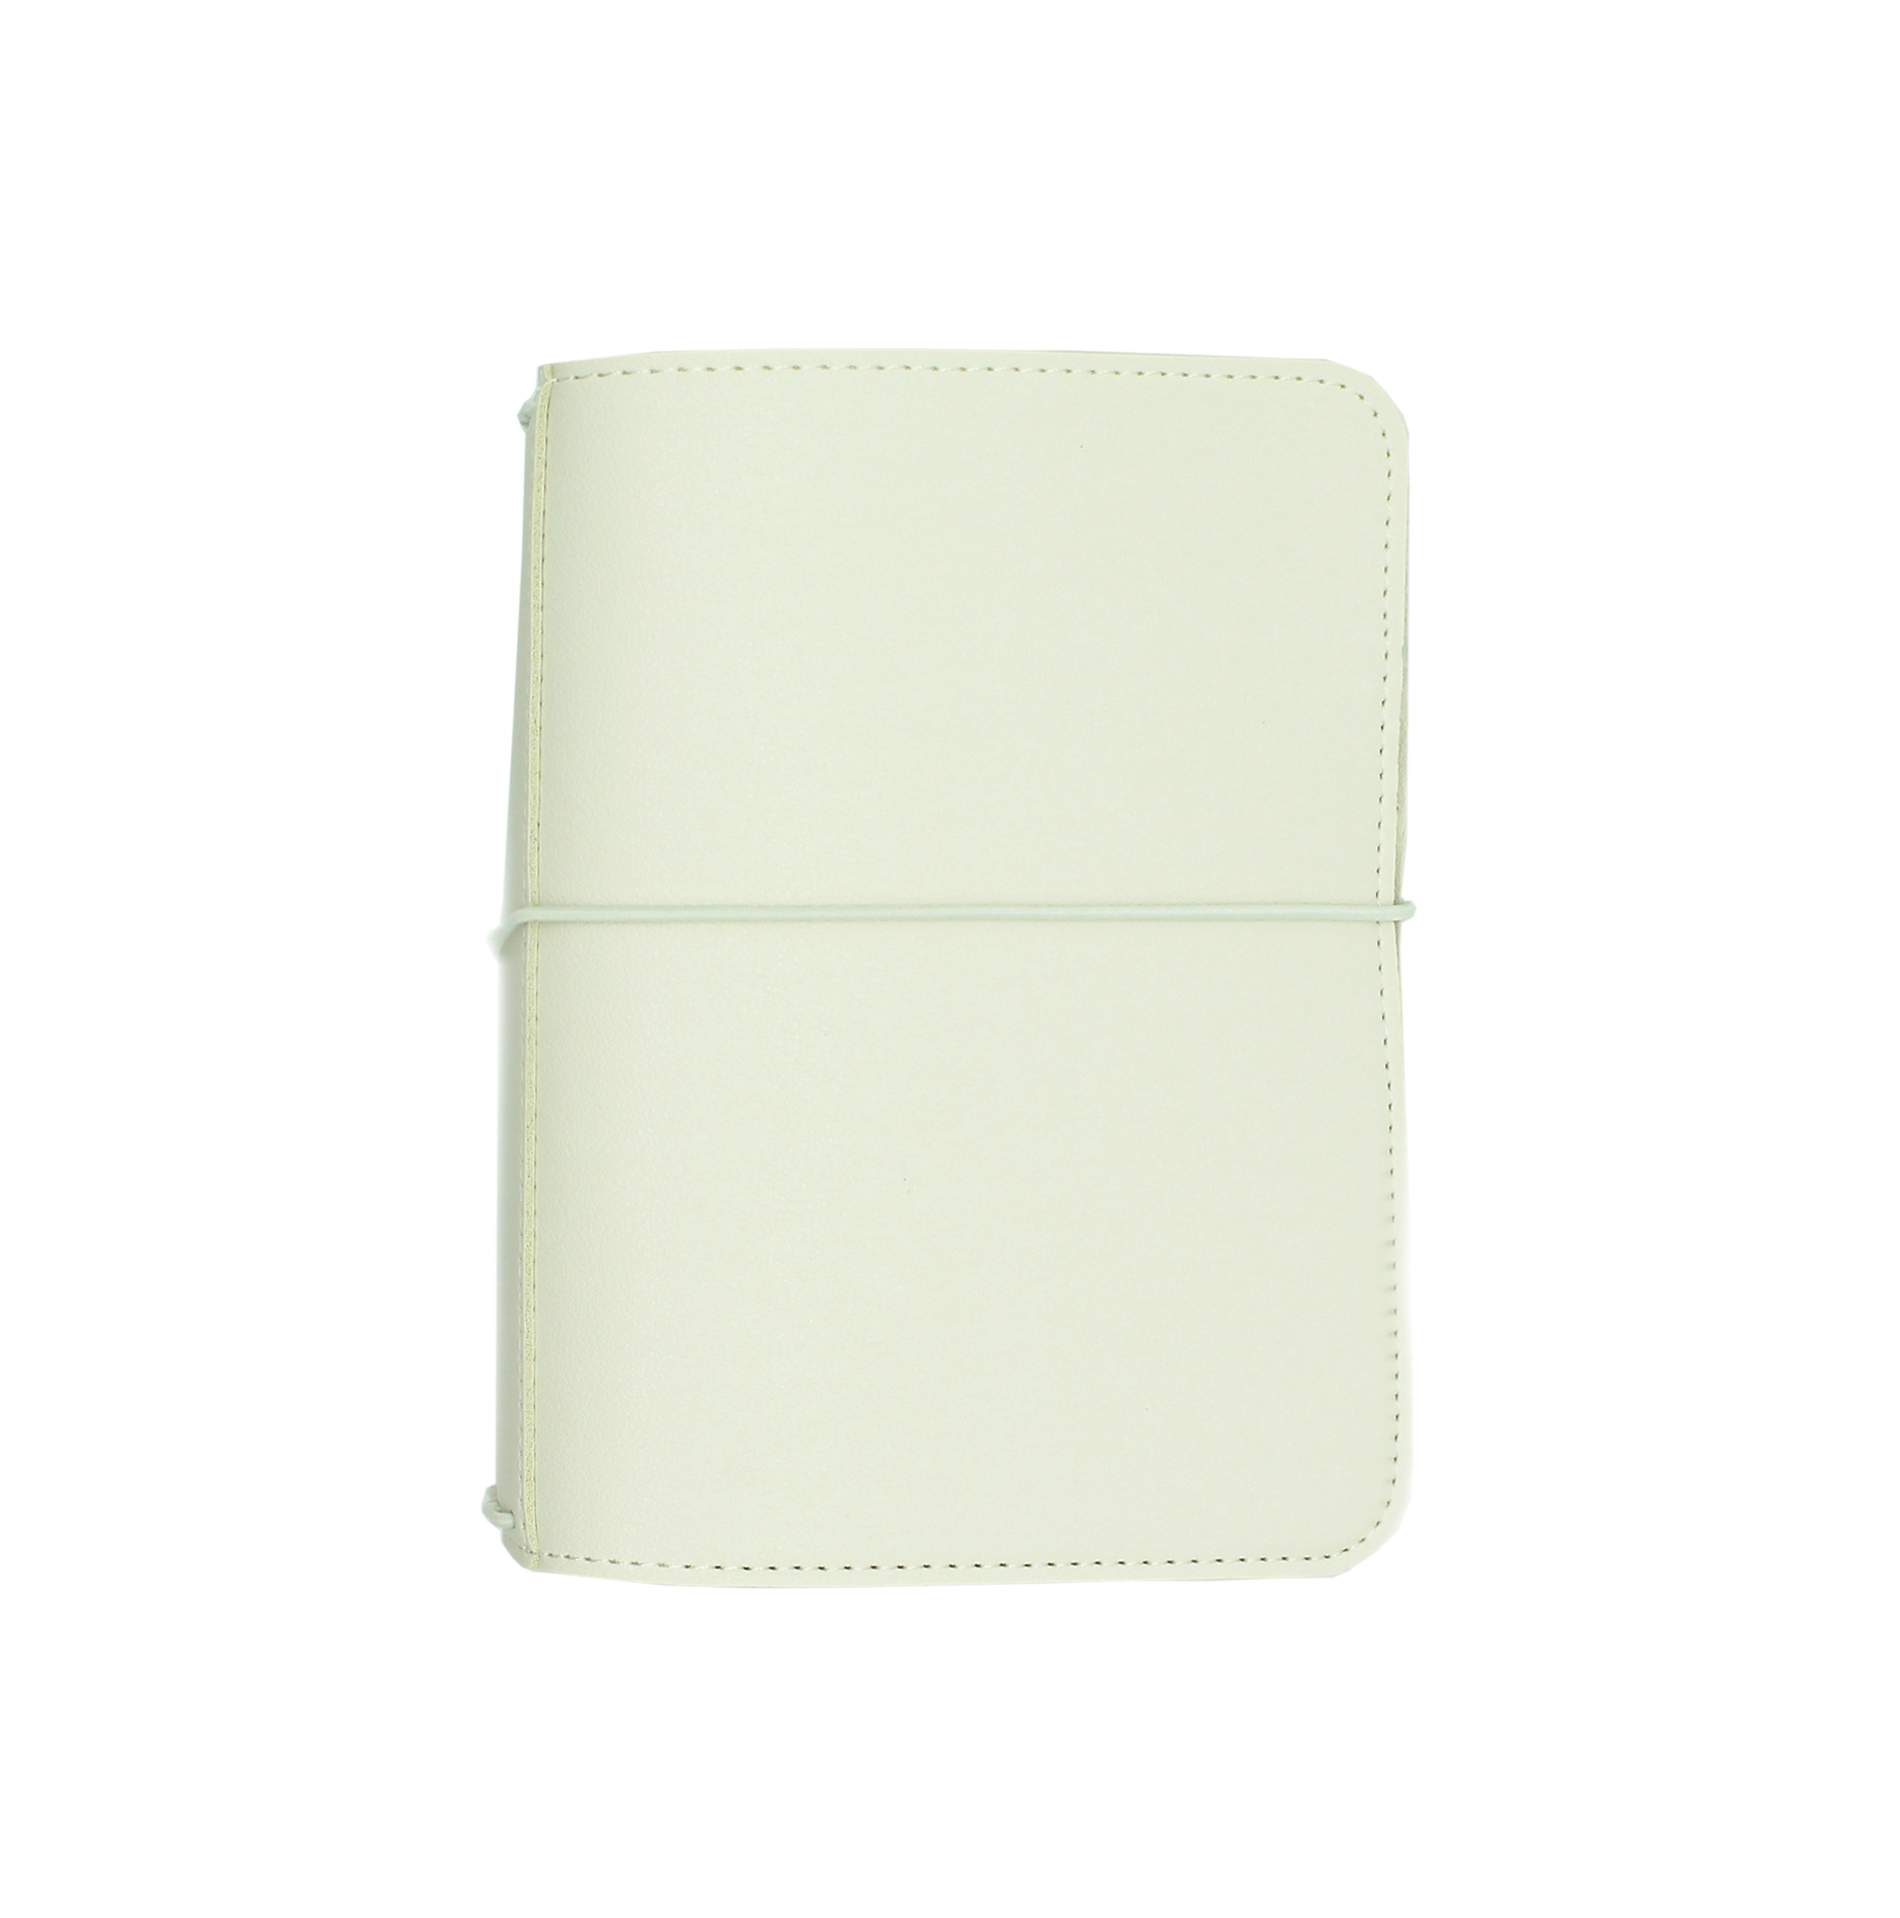 Perfect Fit B6 Traveler's Notebook - Milk (White)